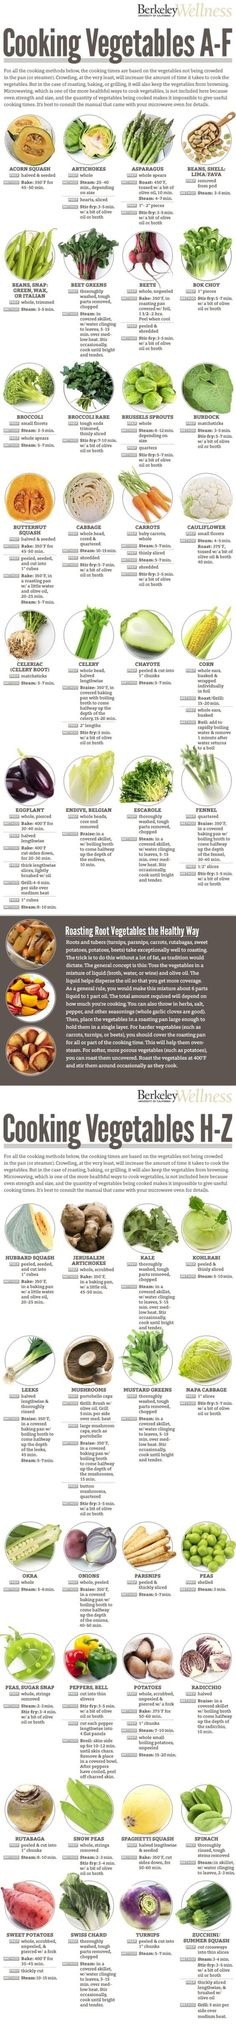 Learn the best way to cook your favorite vegetables.